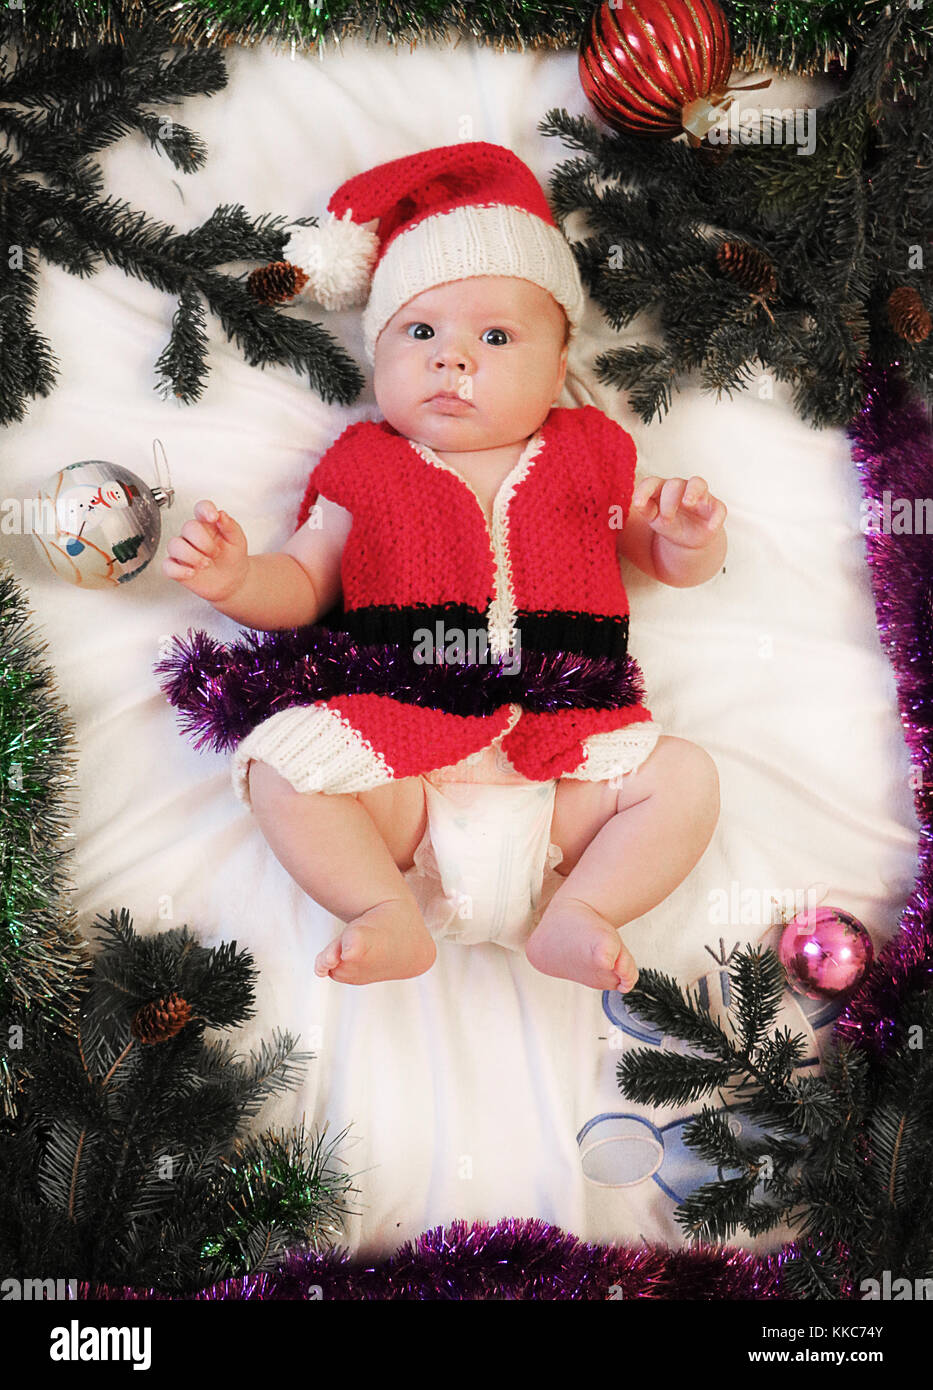 Baby first christmas. Beautiful little baby in Santa hat and jacket  celebrates Christmas. New 2b20837bb67a